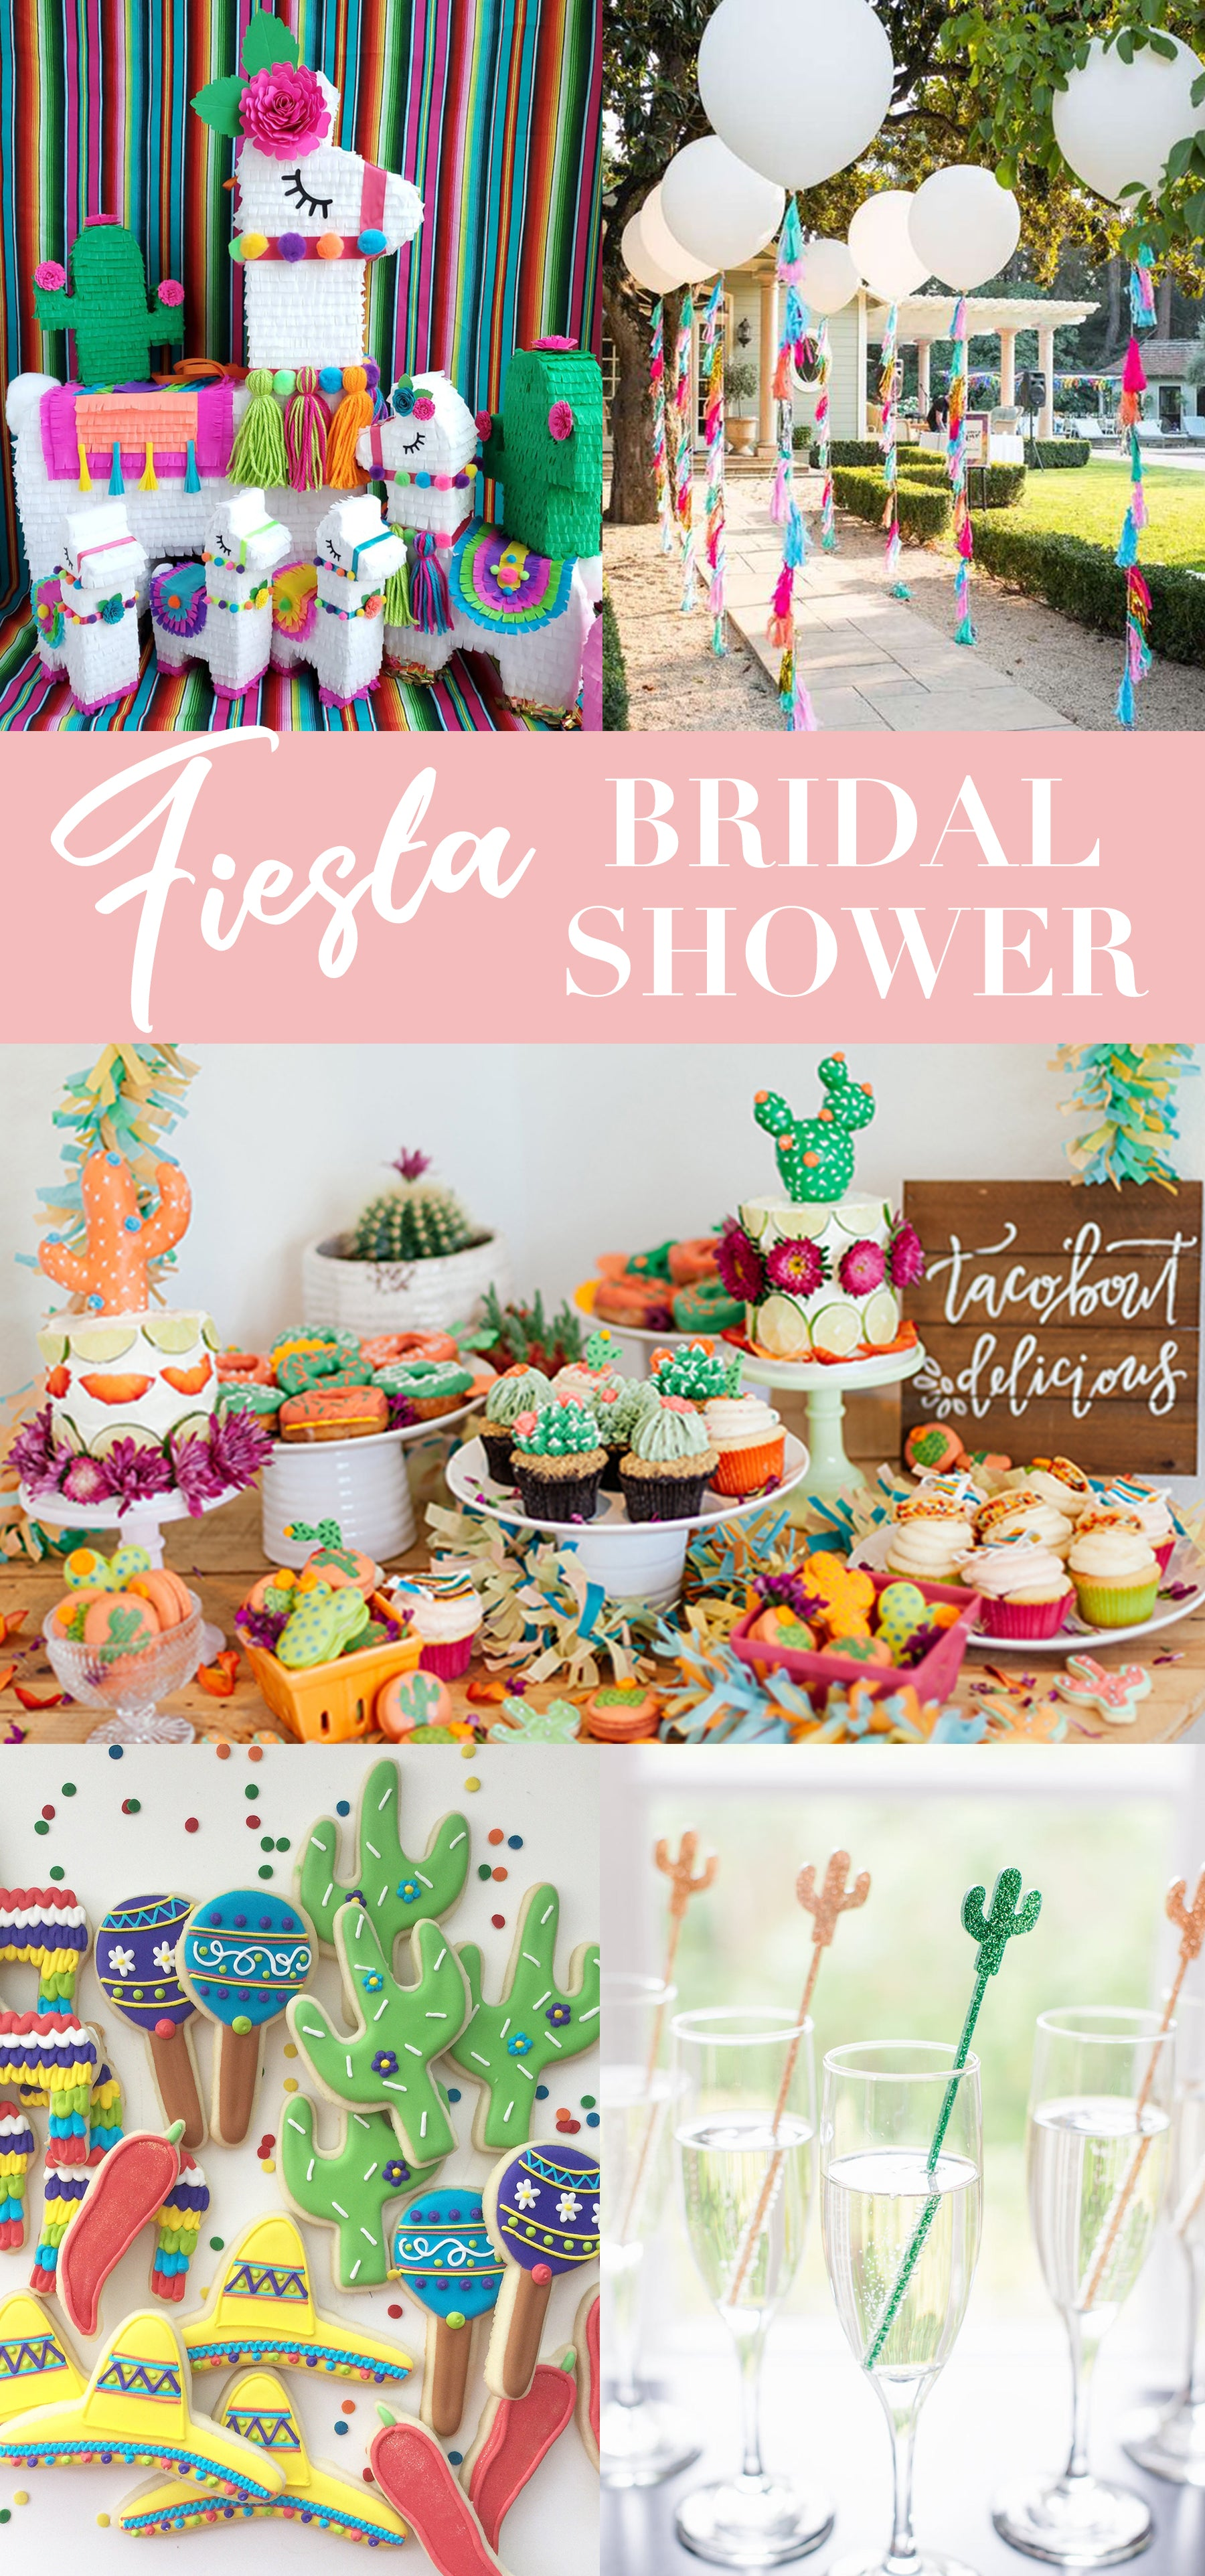 Fiesta Bridal Shower Ideas - Fiesta Party Inspiration - Cinco de Mayo Decorations